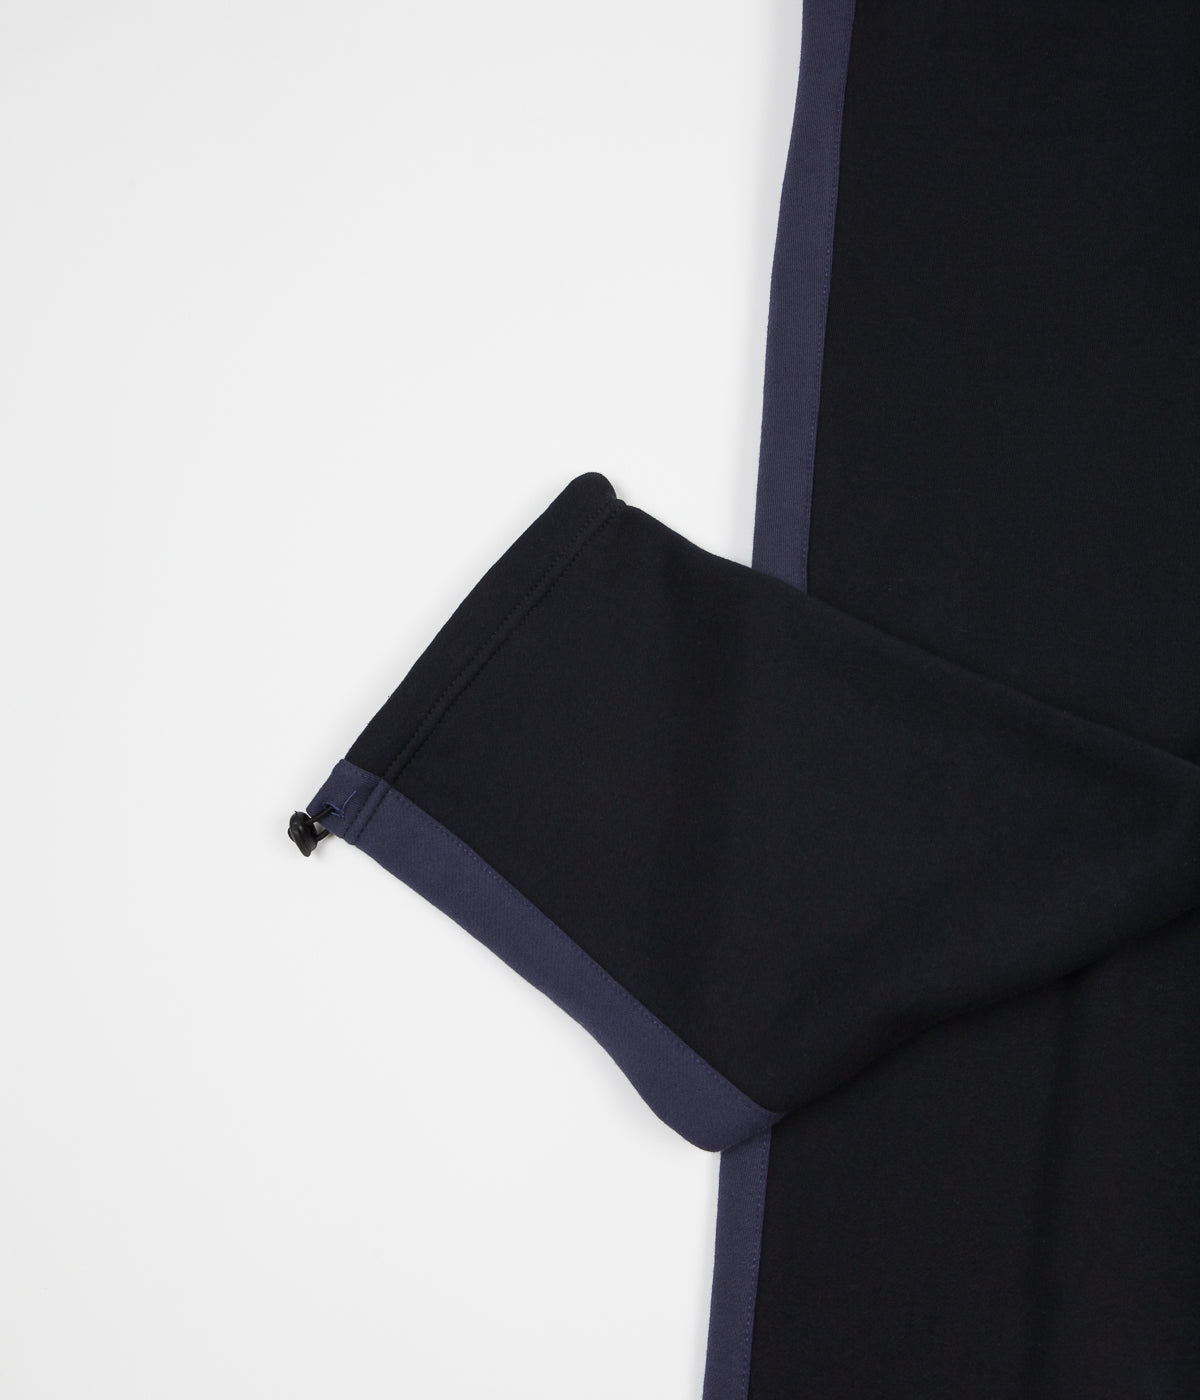 Yardsale 2Tone Tracksuit Sweatpants - Navy / Dark Navy